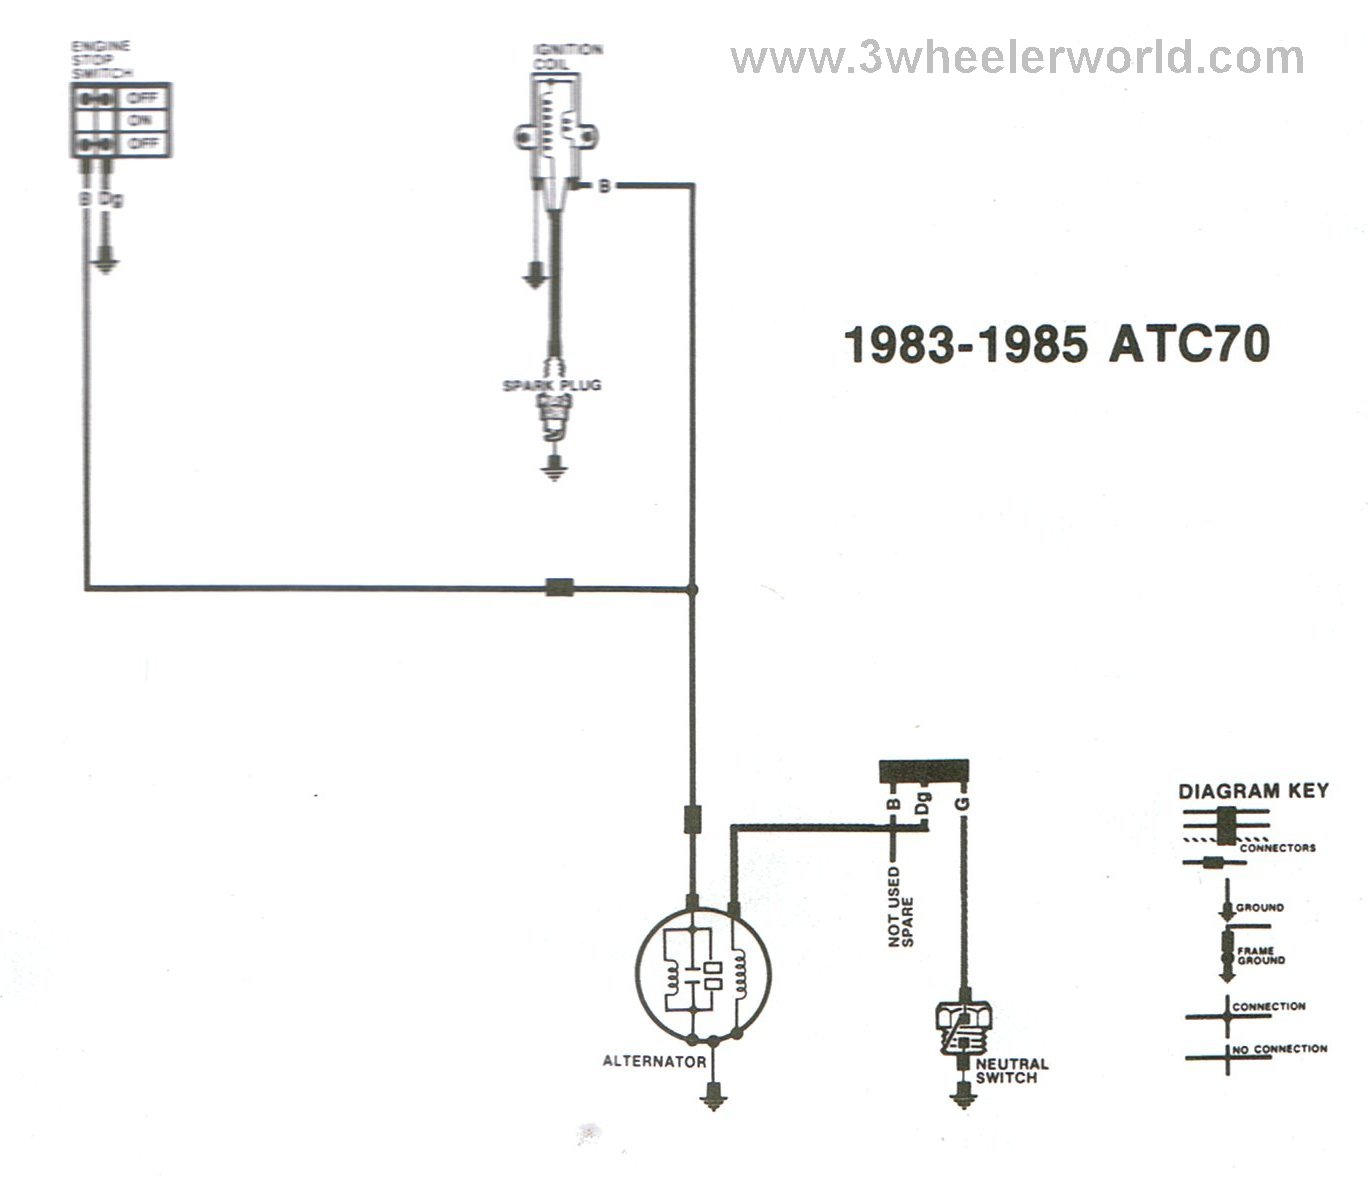 ATC70x83Thru85 3 wheeler world tech help honda wiring diagrams wiring diagram for 1984 honda atc 70 at honlapkeszites.co